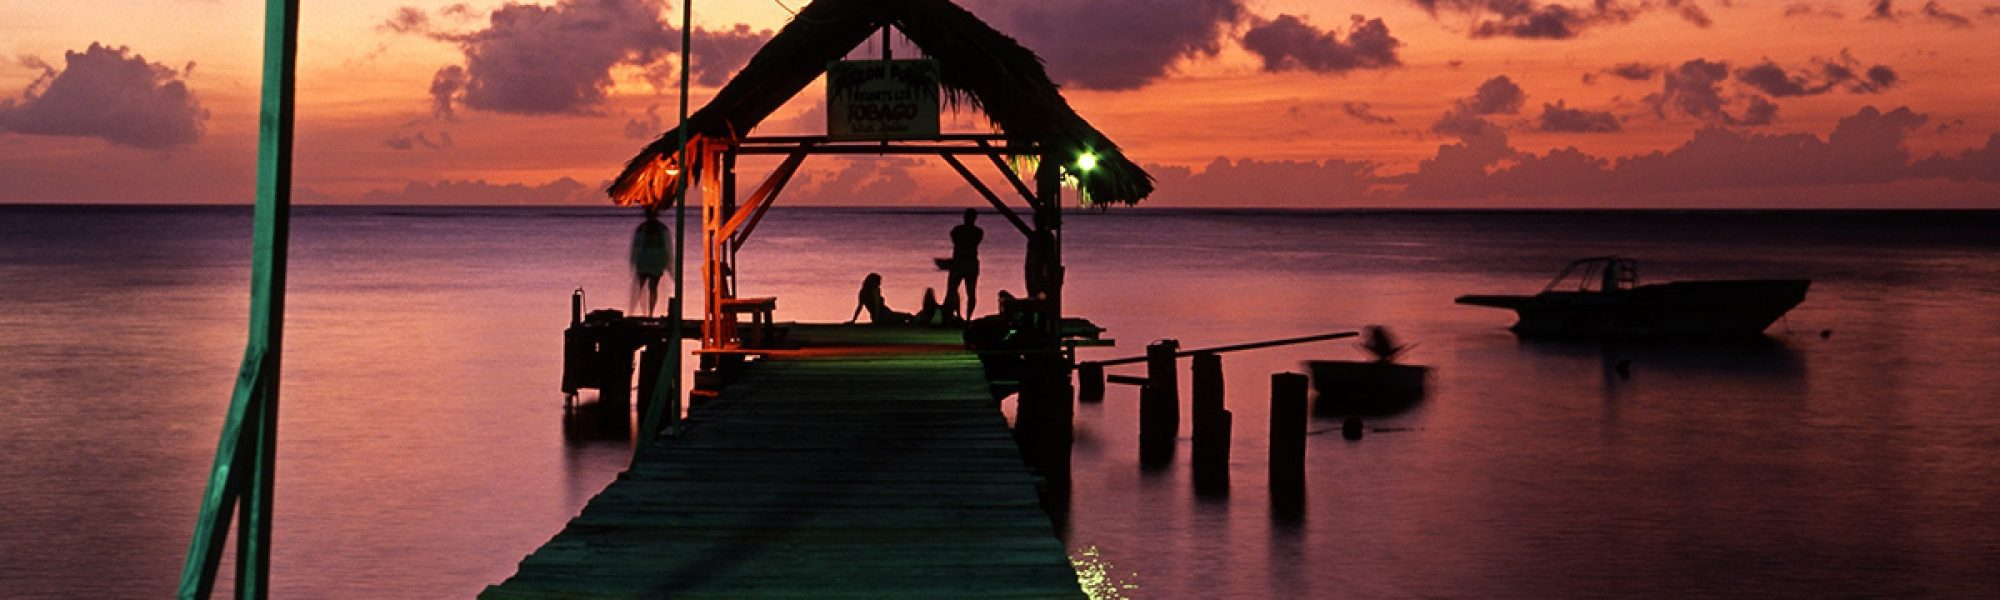 The jetty at Pigeon Point at sunset, Tobago